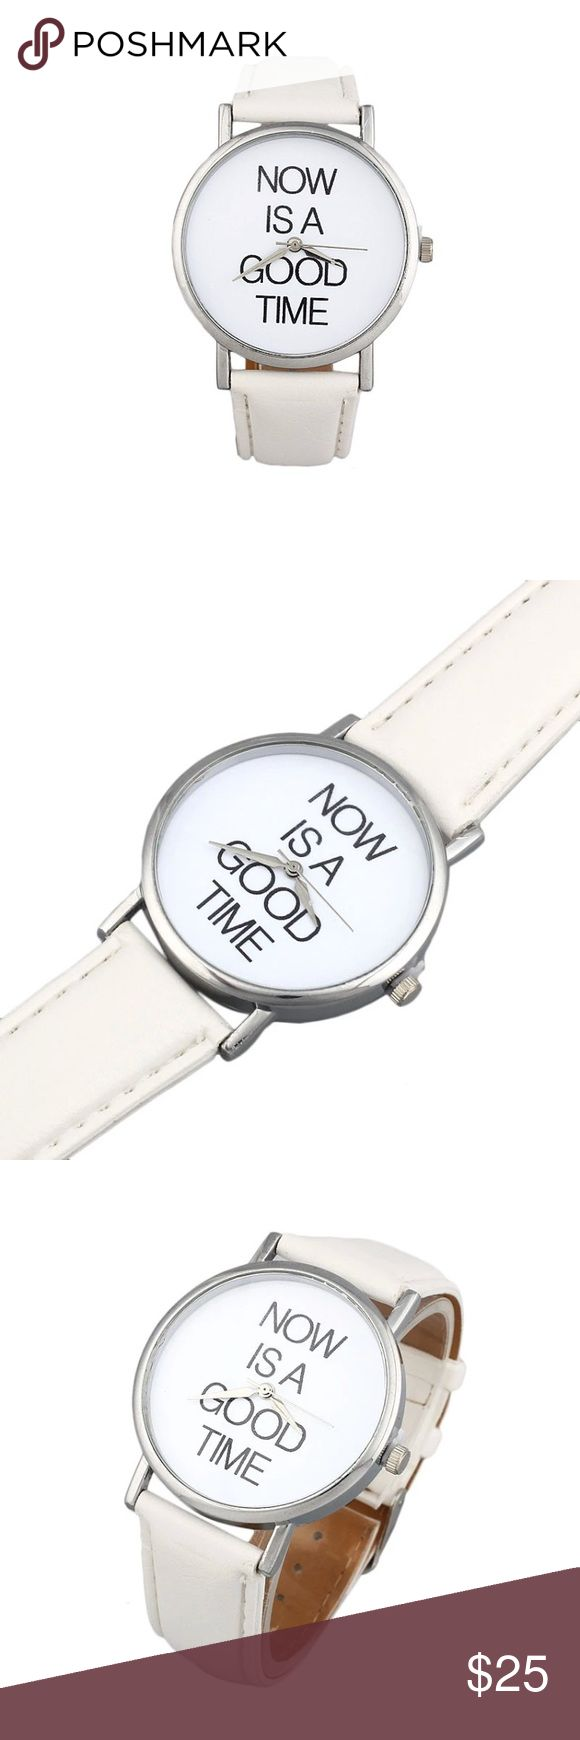 "Just In! 🆕 ""Now Is a Good Time"" Watch Brand new. ""Now Is a Good Time"" Watch. Stainless steel back with white strap. Accessories Watches"